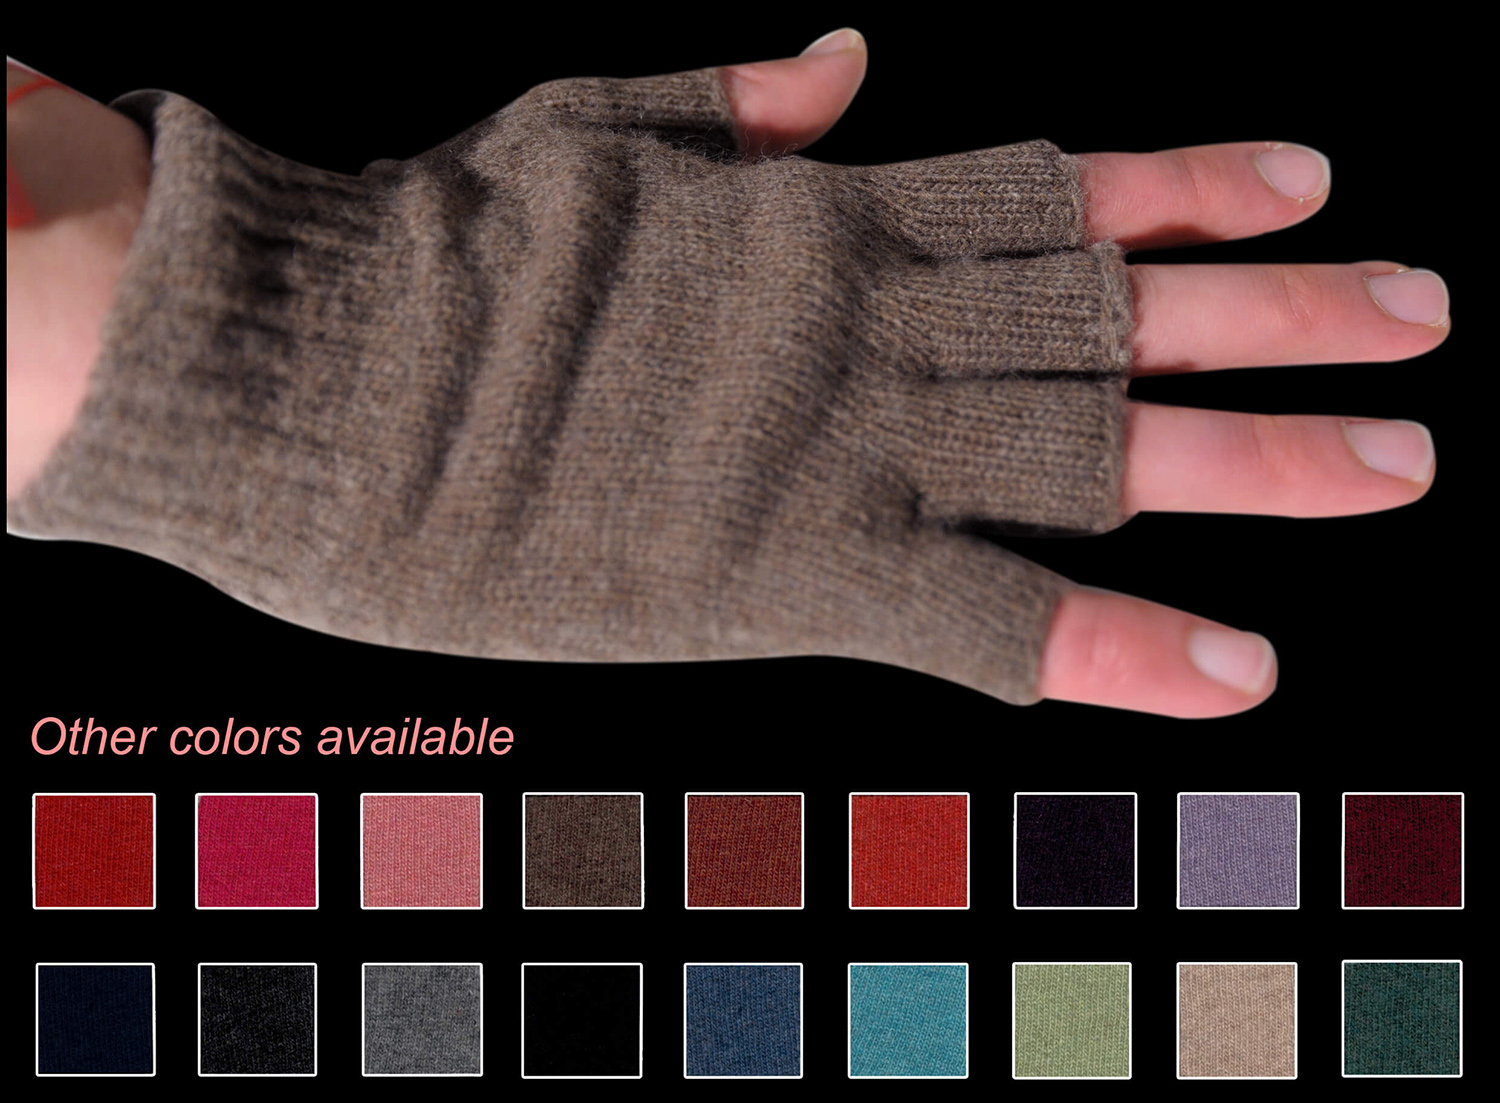 Man glove color tabacco code 263